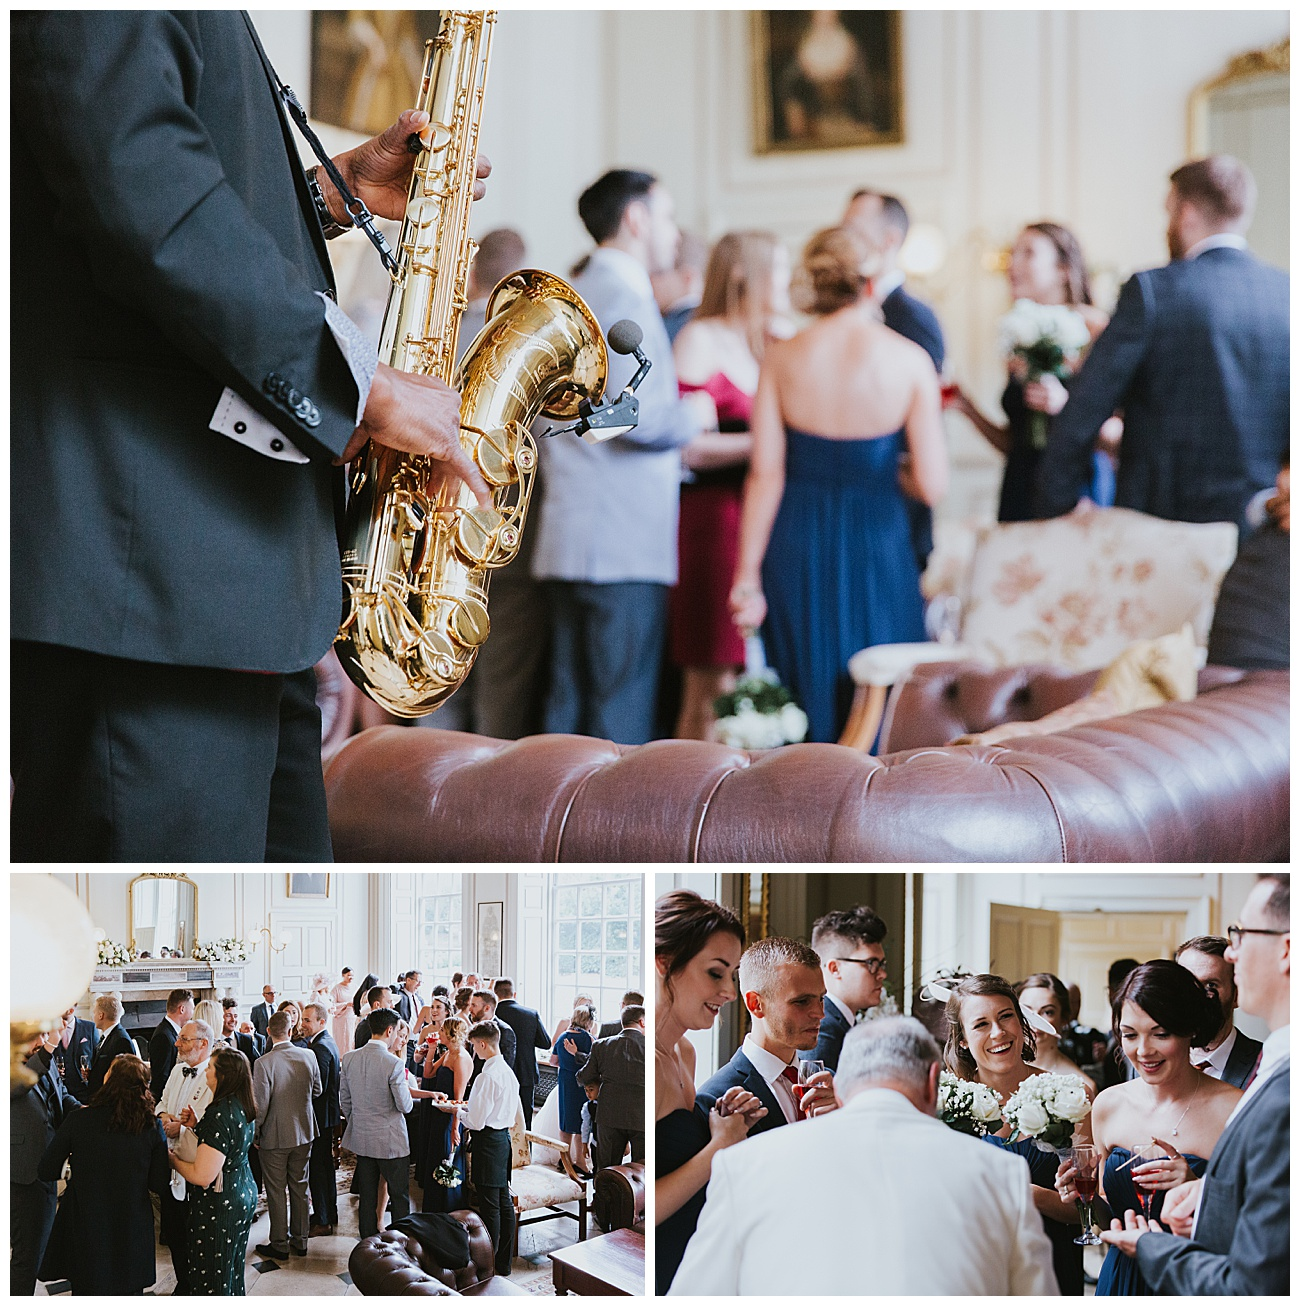 A saxophone player plays to the wedding guests as they enjoy drinks and canapes